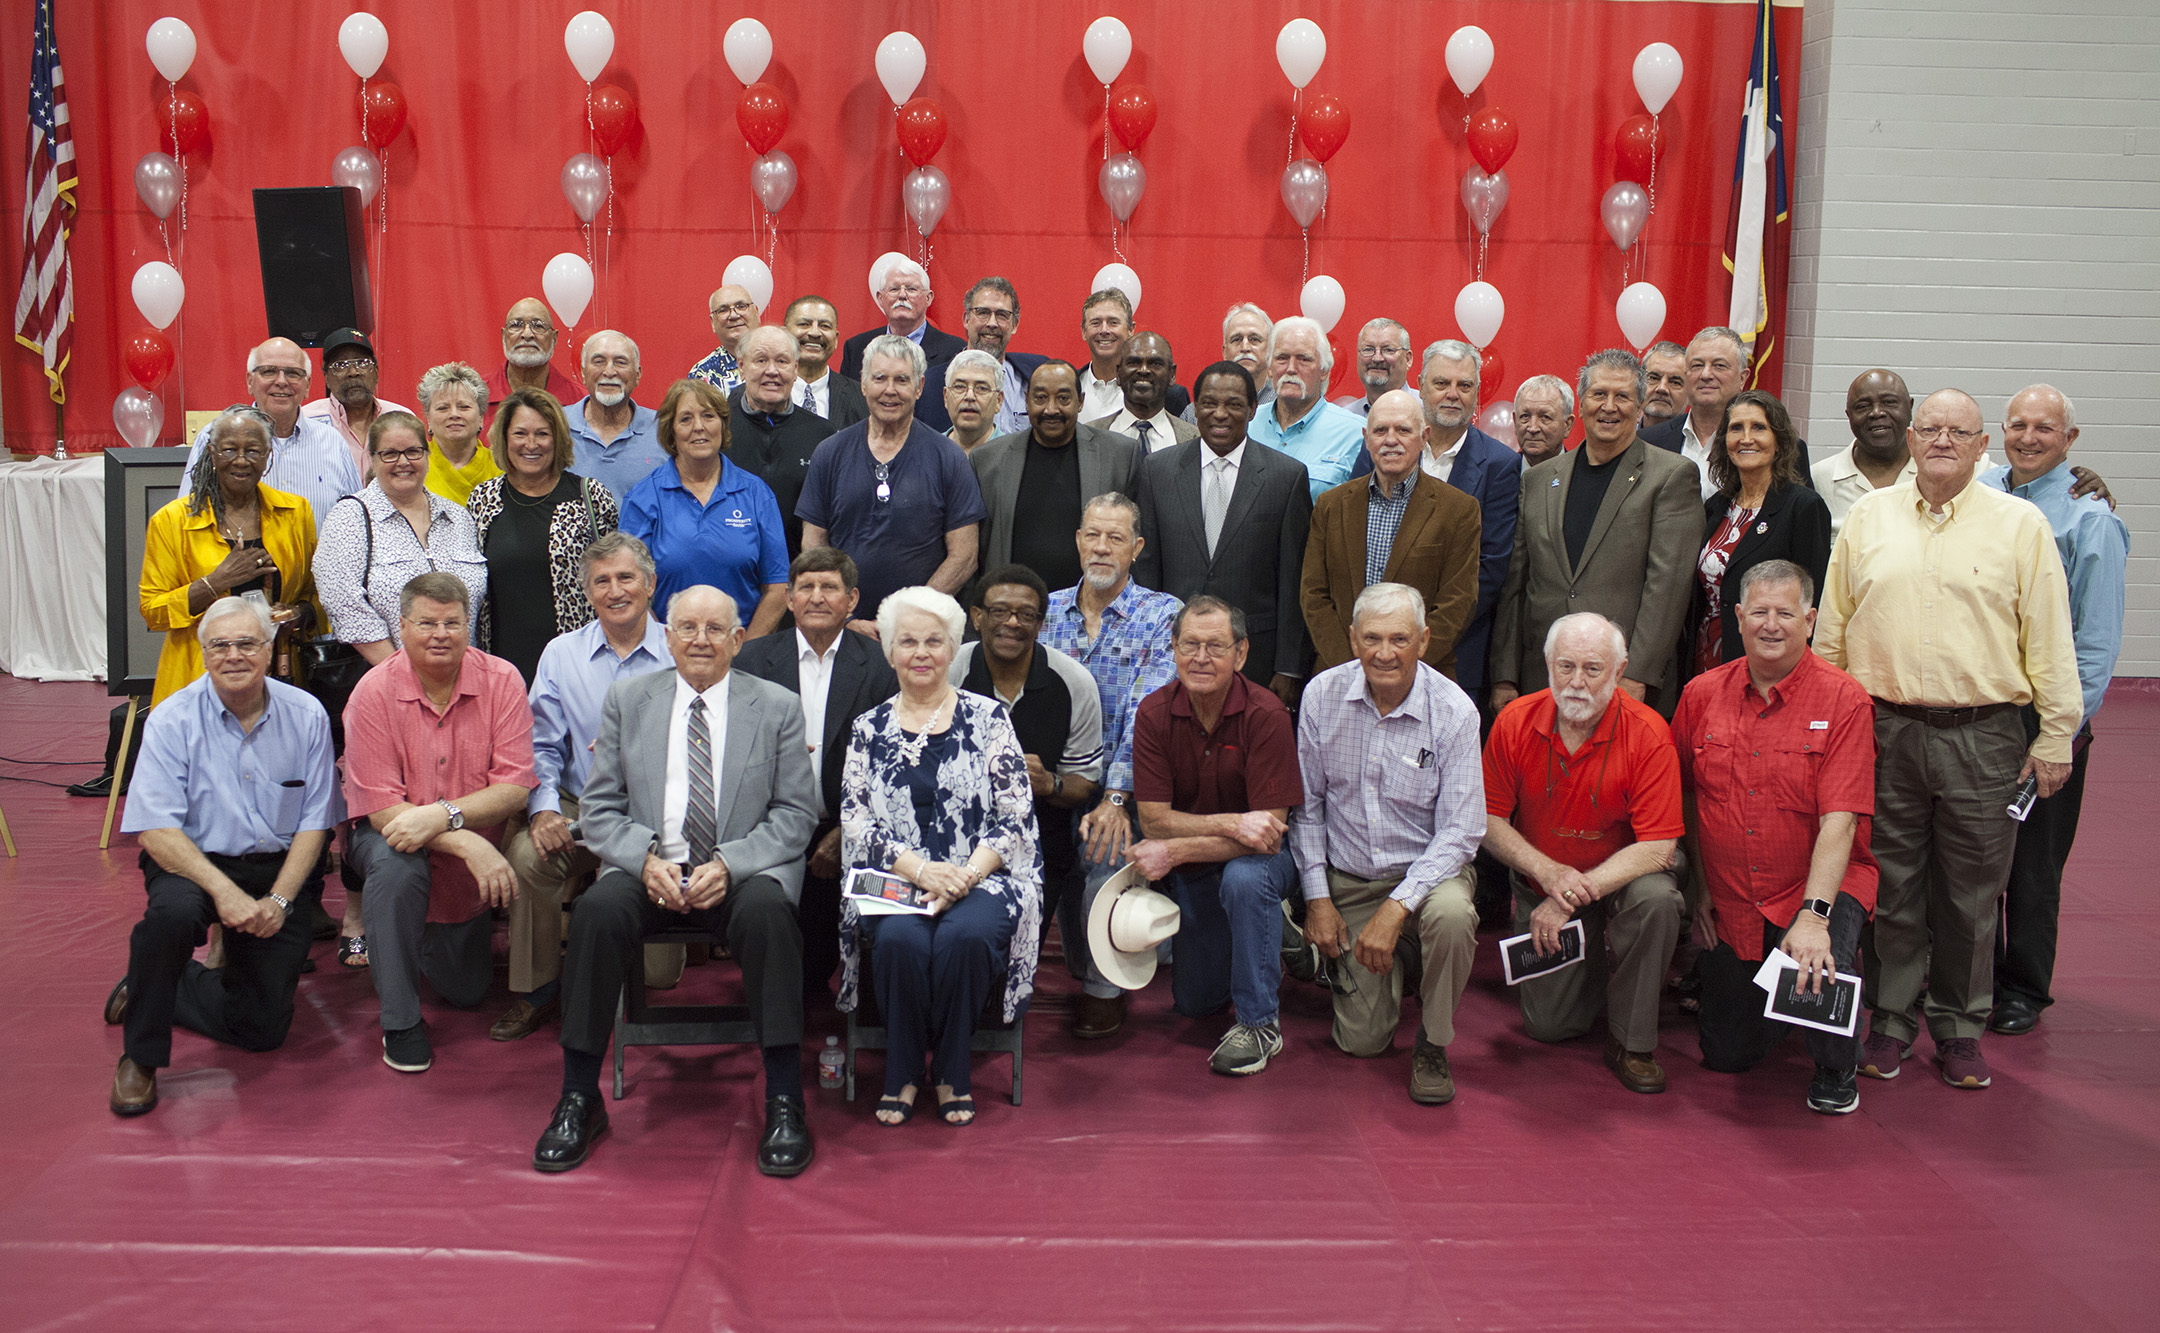 GENE BAHNSEN GYMNASIUM - WCJC names gym in honor of longtime athletic director and coach